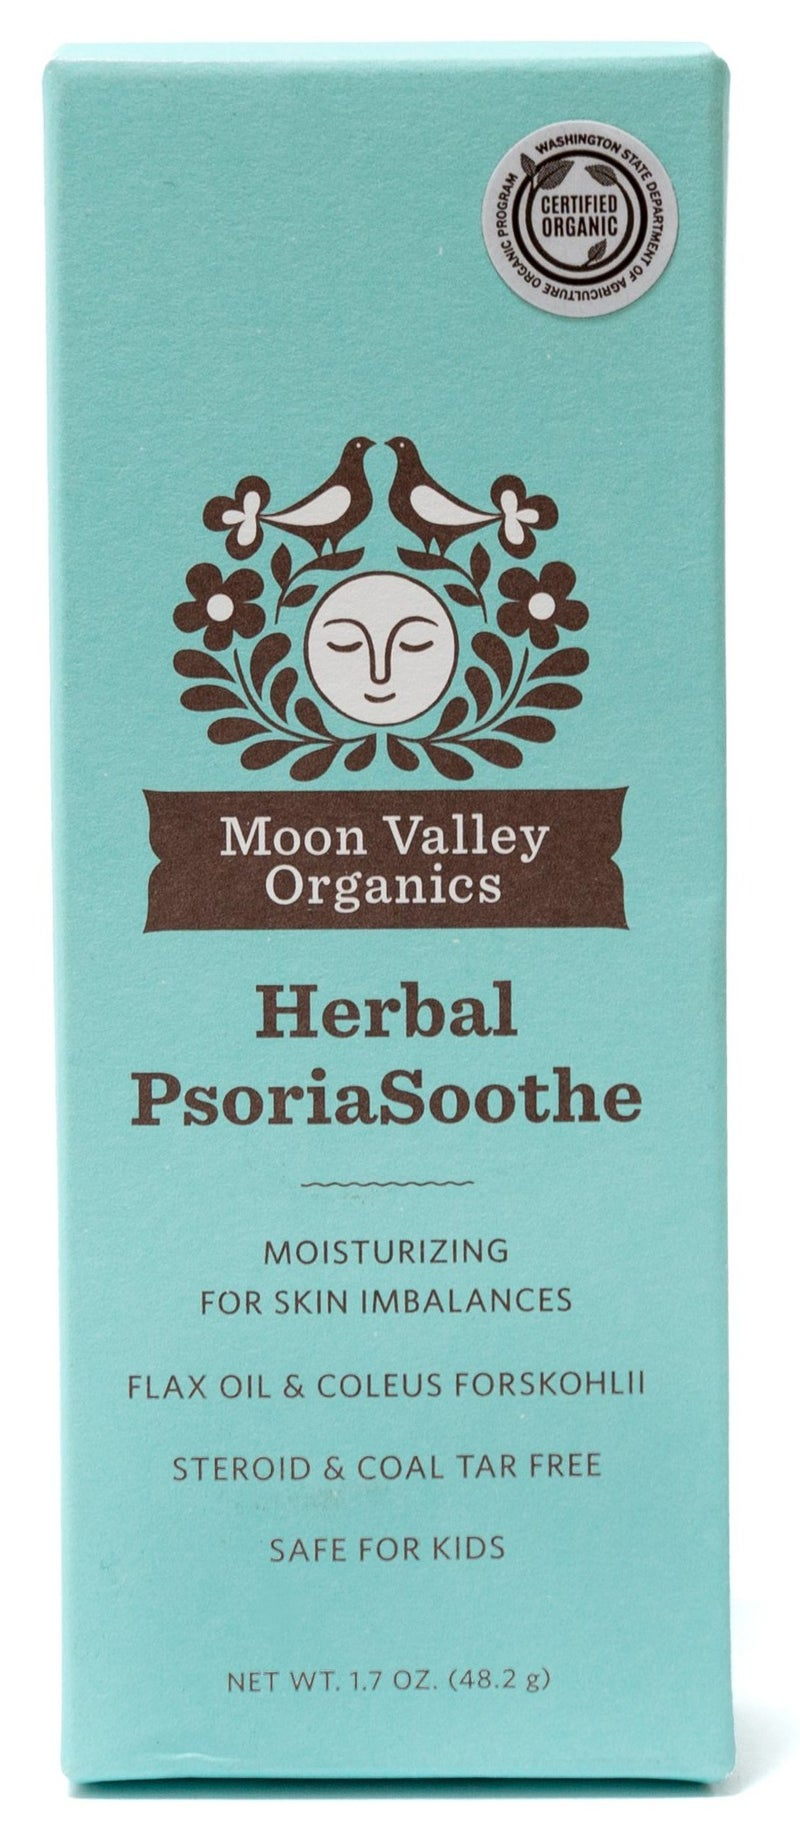 Moon Valley Organics Herbal Psoriasoothe